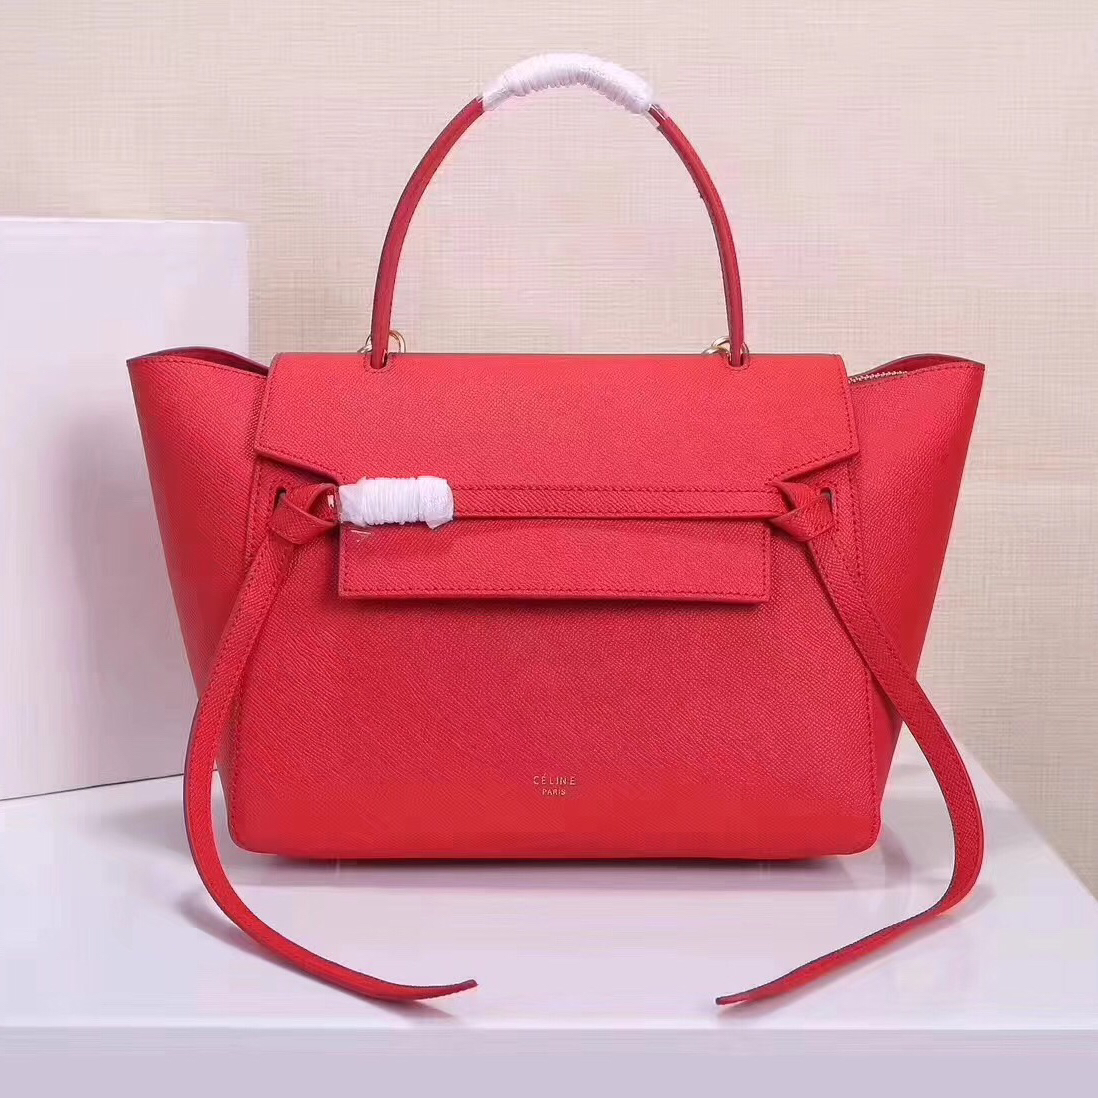 Celine Belt Bag Red Epsom Leather Tote Handbag